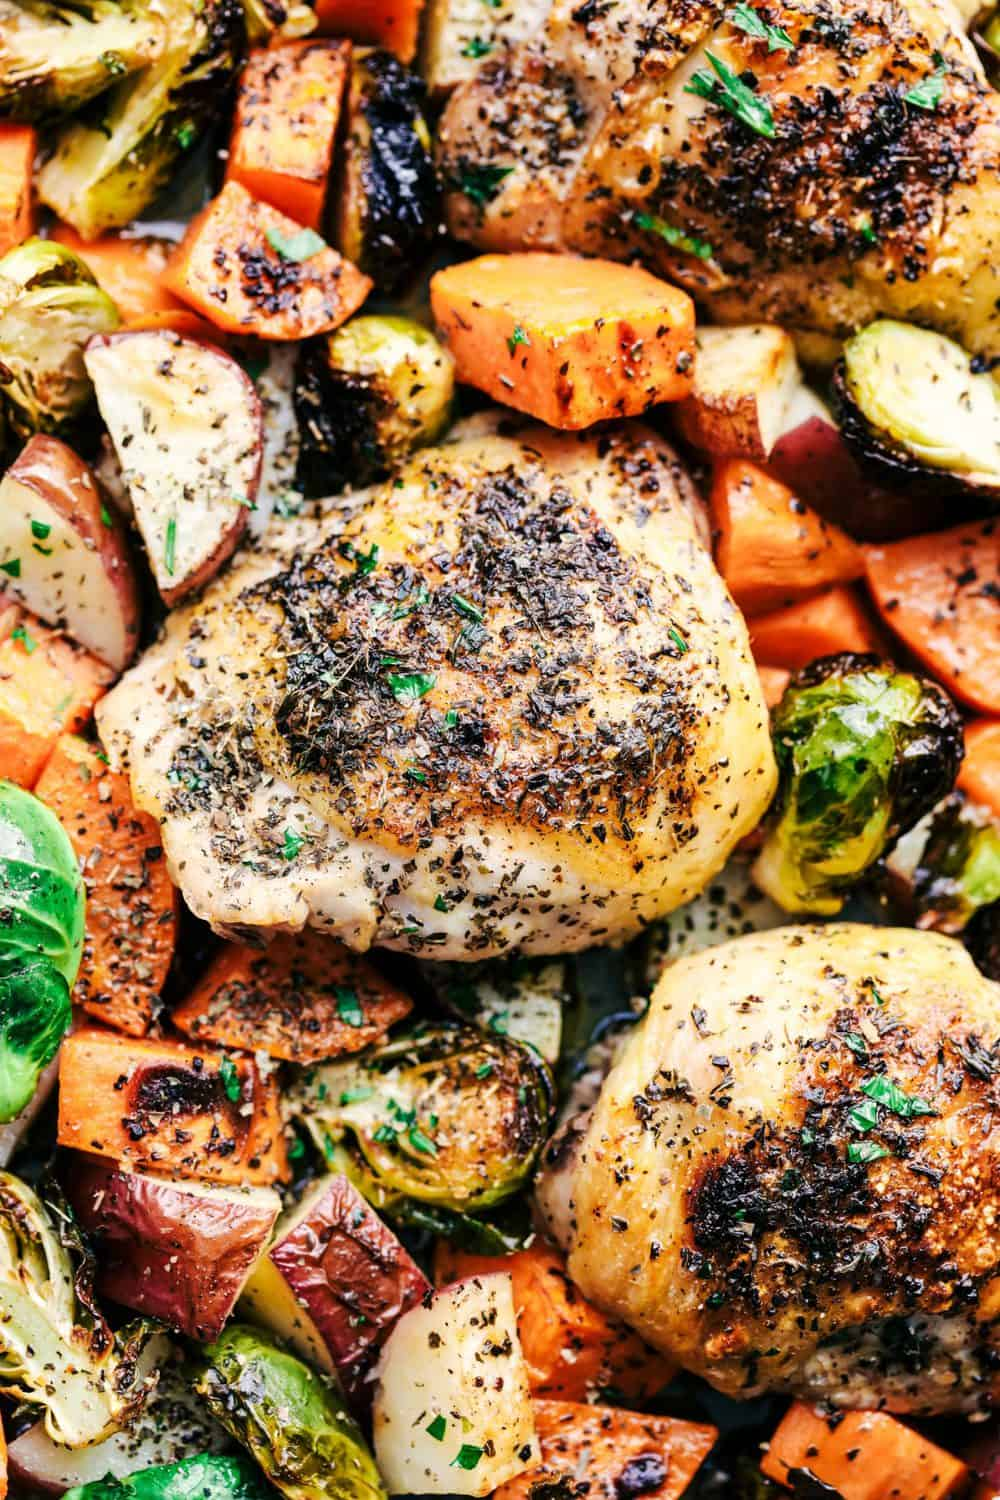 Sheet Pan Roasted Garlic Butter Herb Chicken with Potatoes and Brussels Sprouts close up